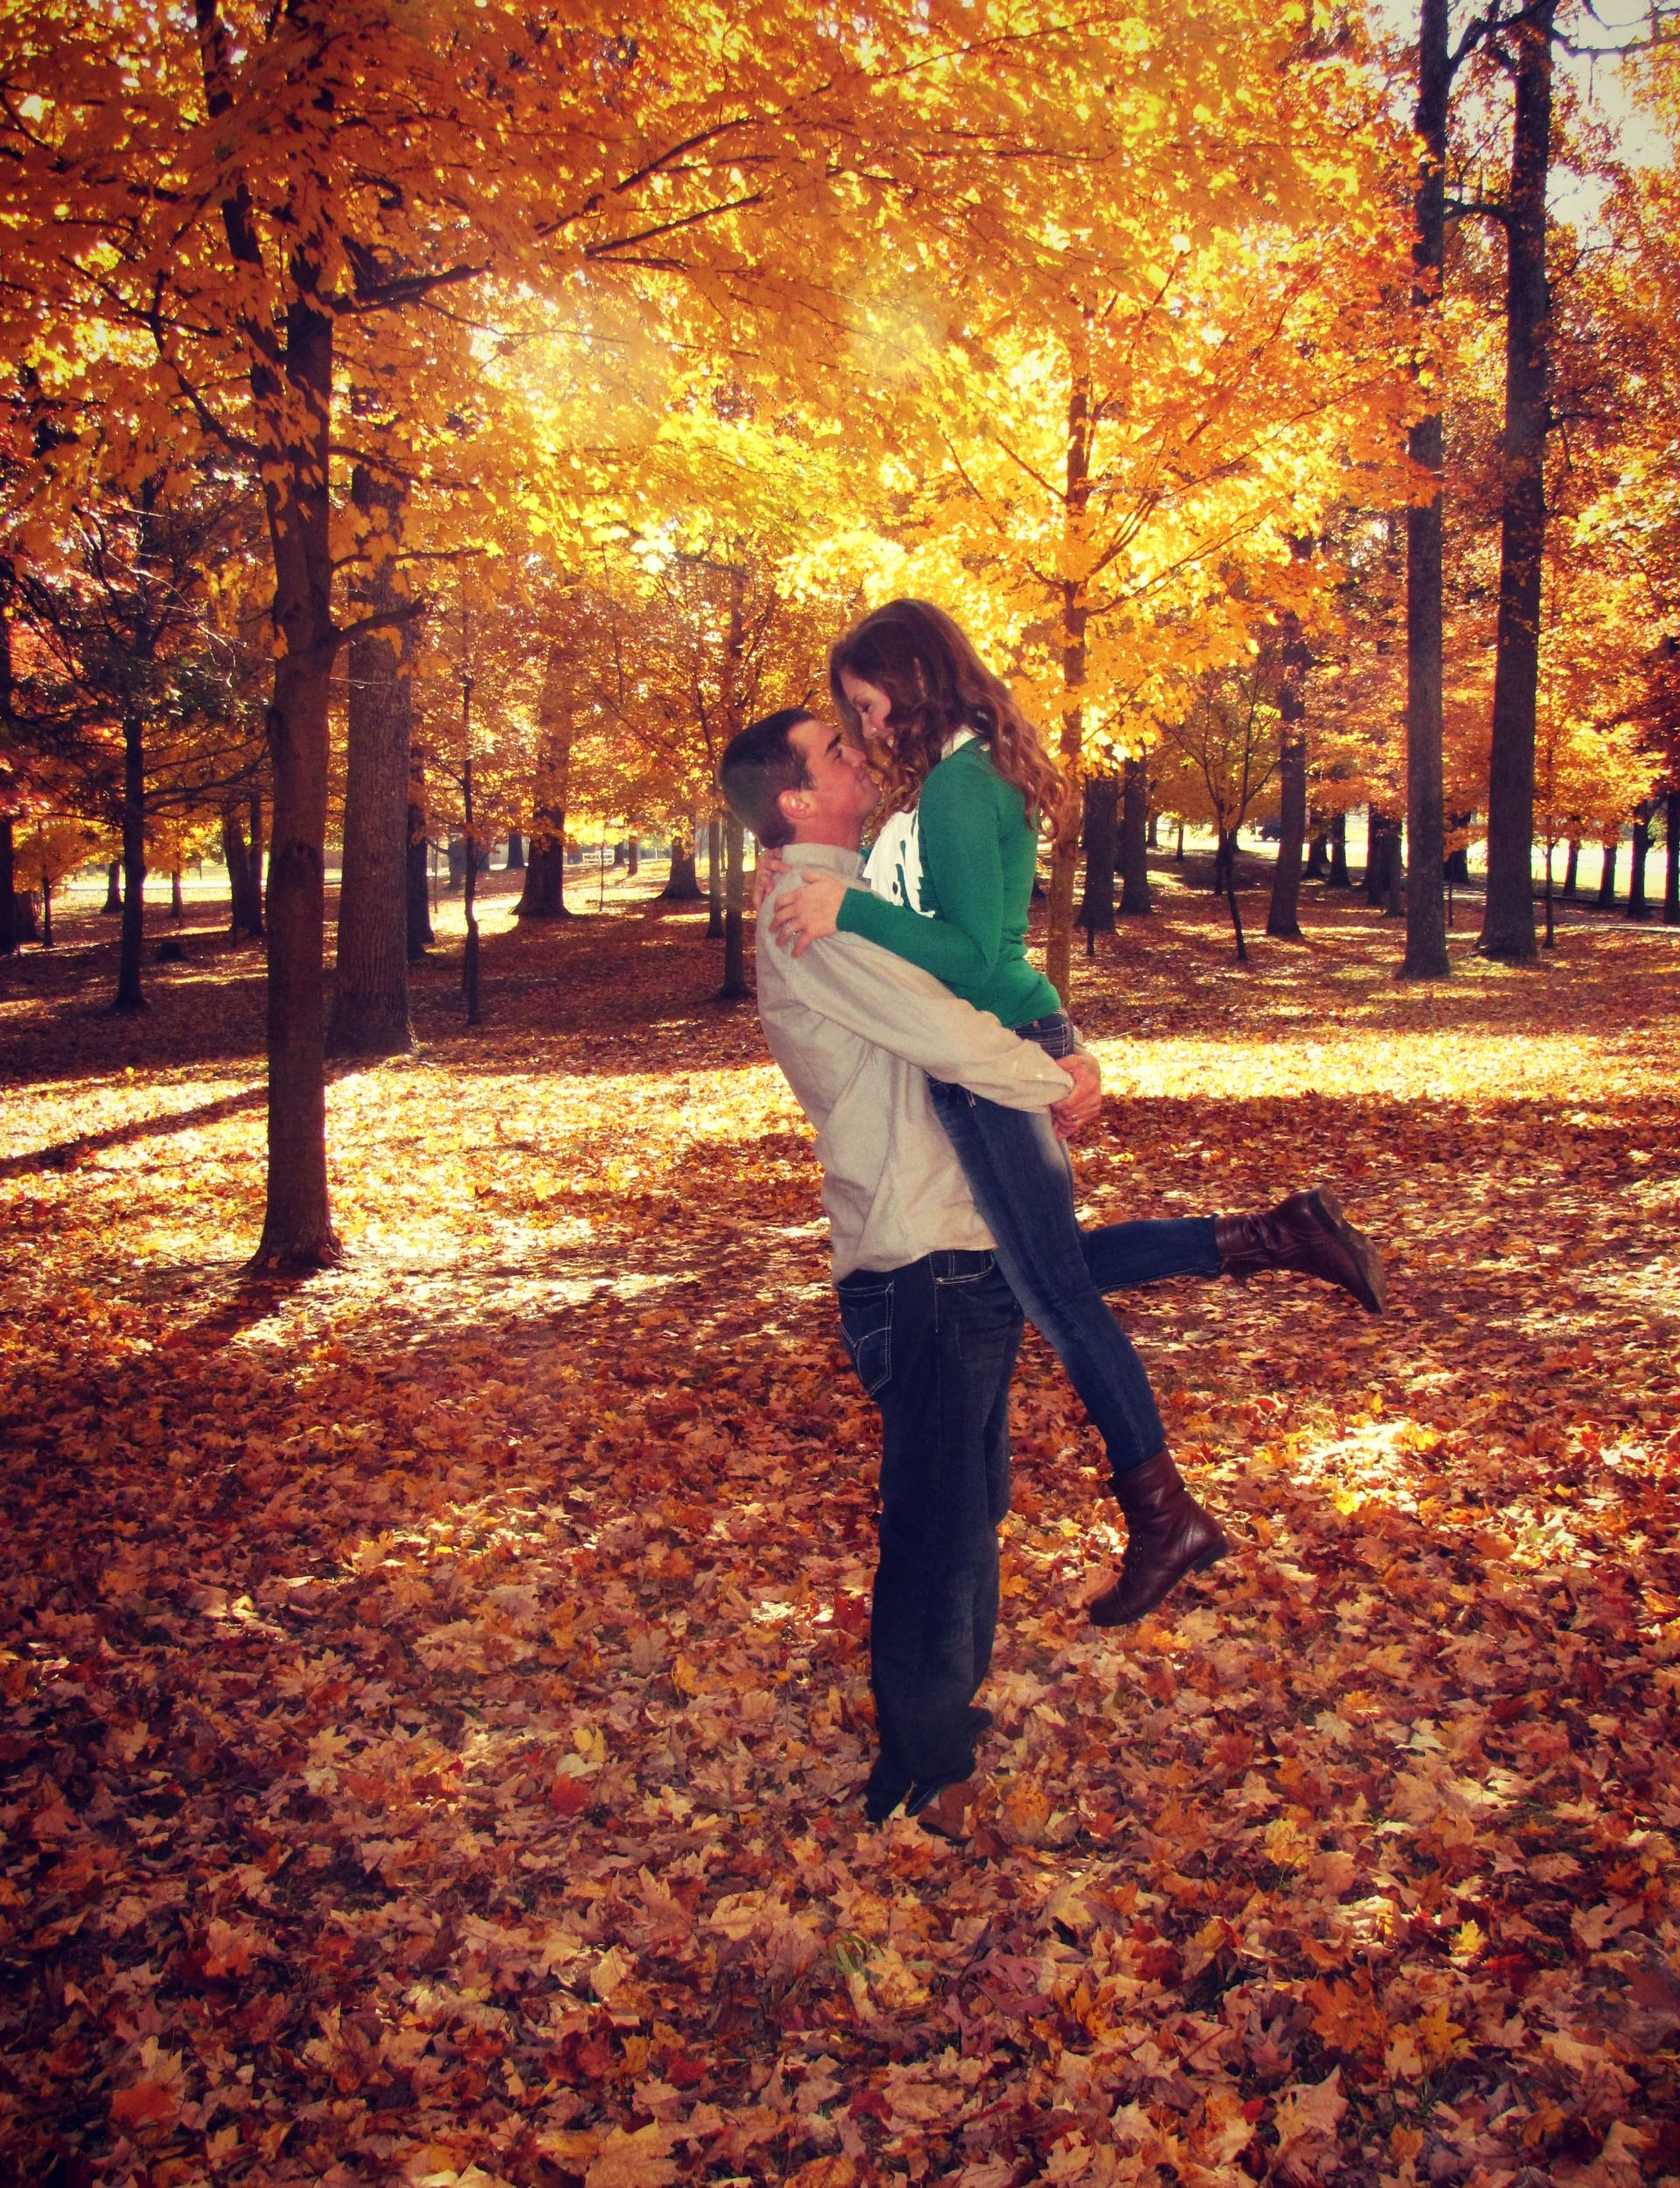 cute couple fall love kaitymcarthurphotos my pictures pinterest couples picture ideas. Black Bedroom Furniture Sets. Home Design Ideas